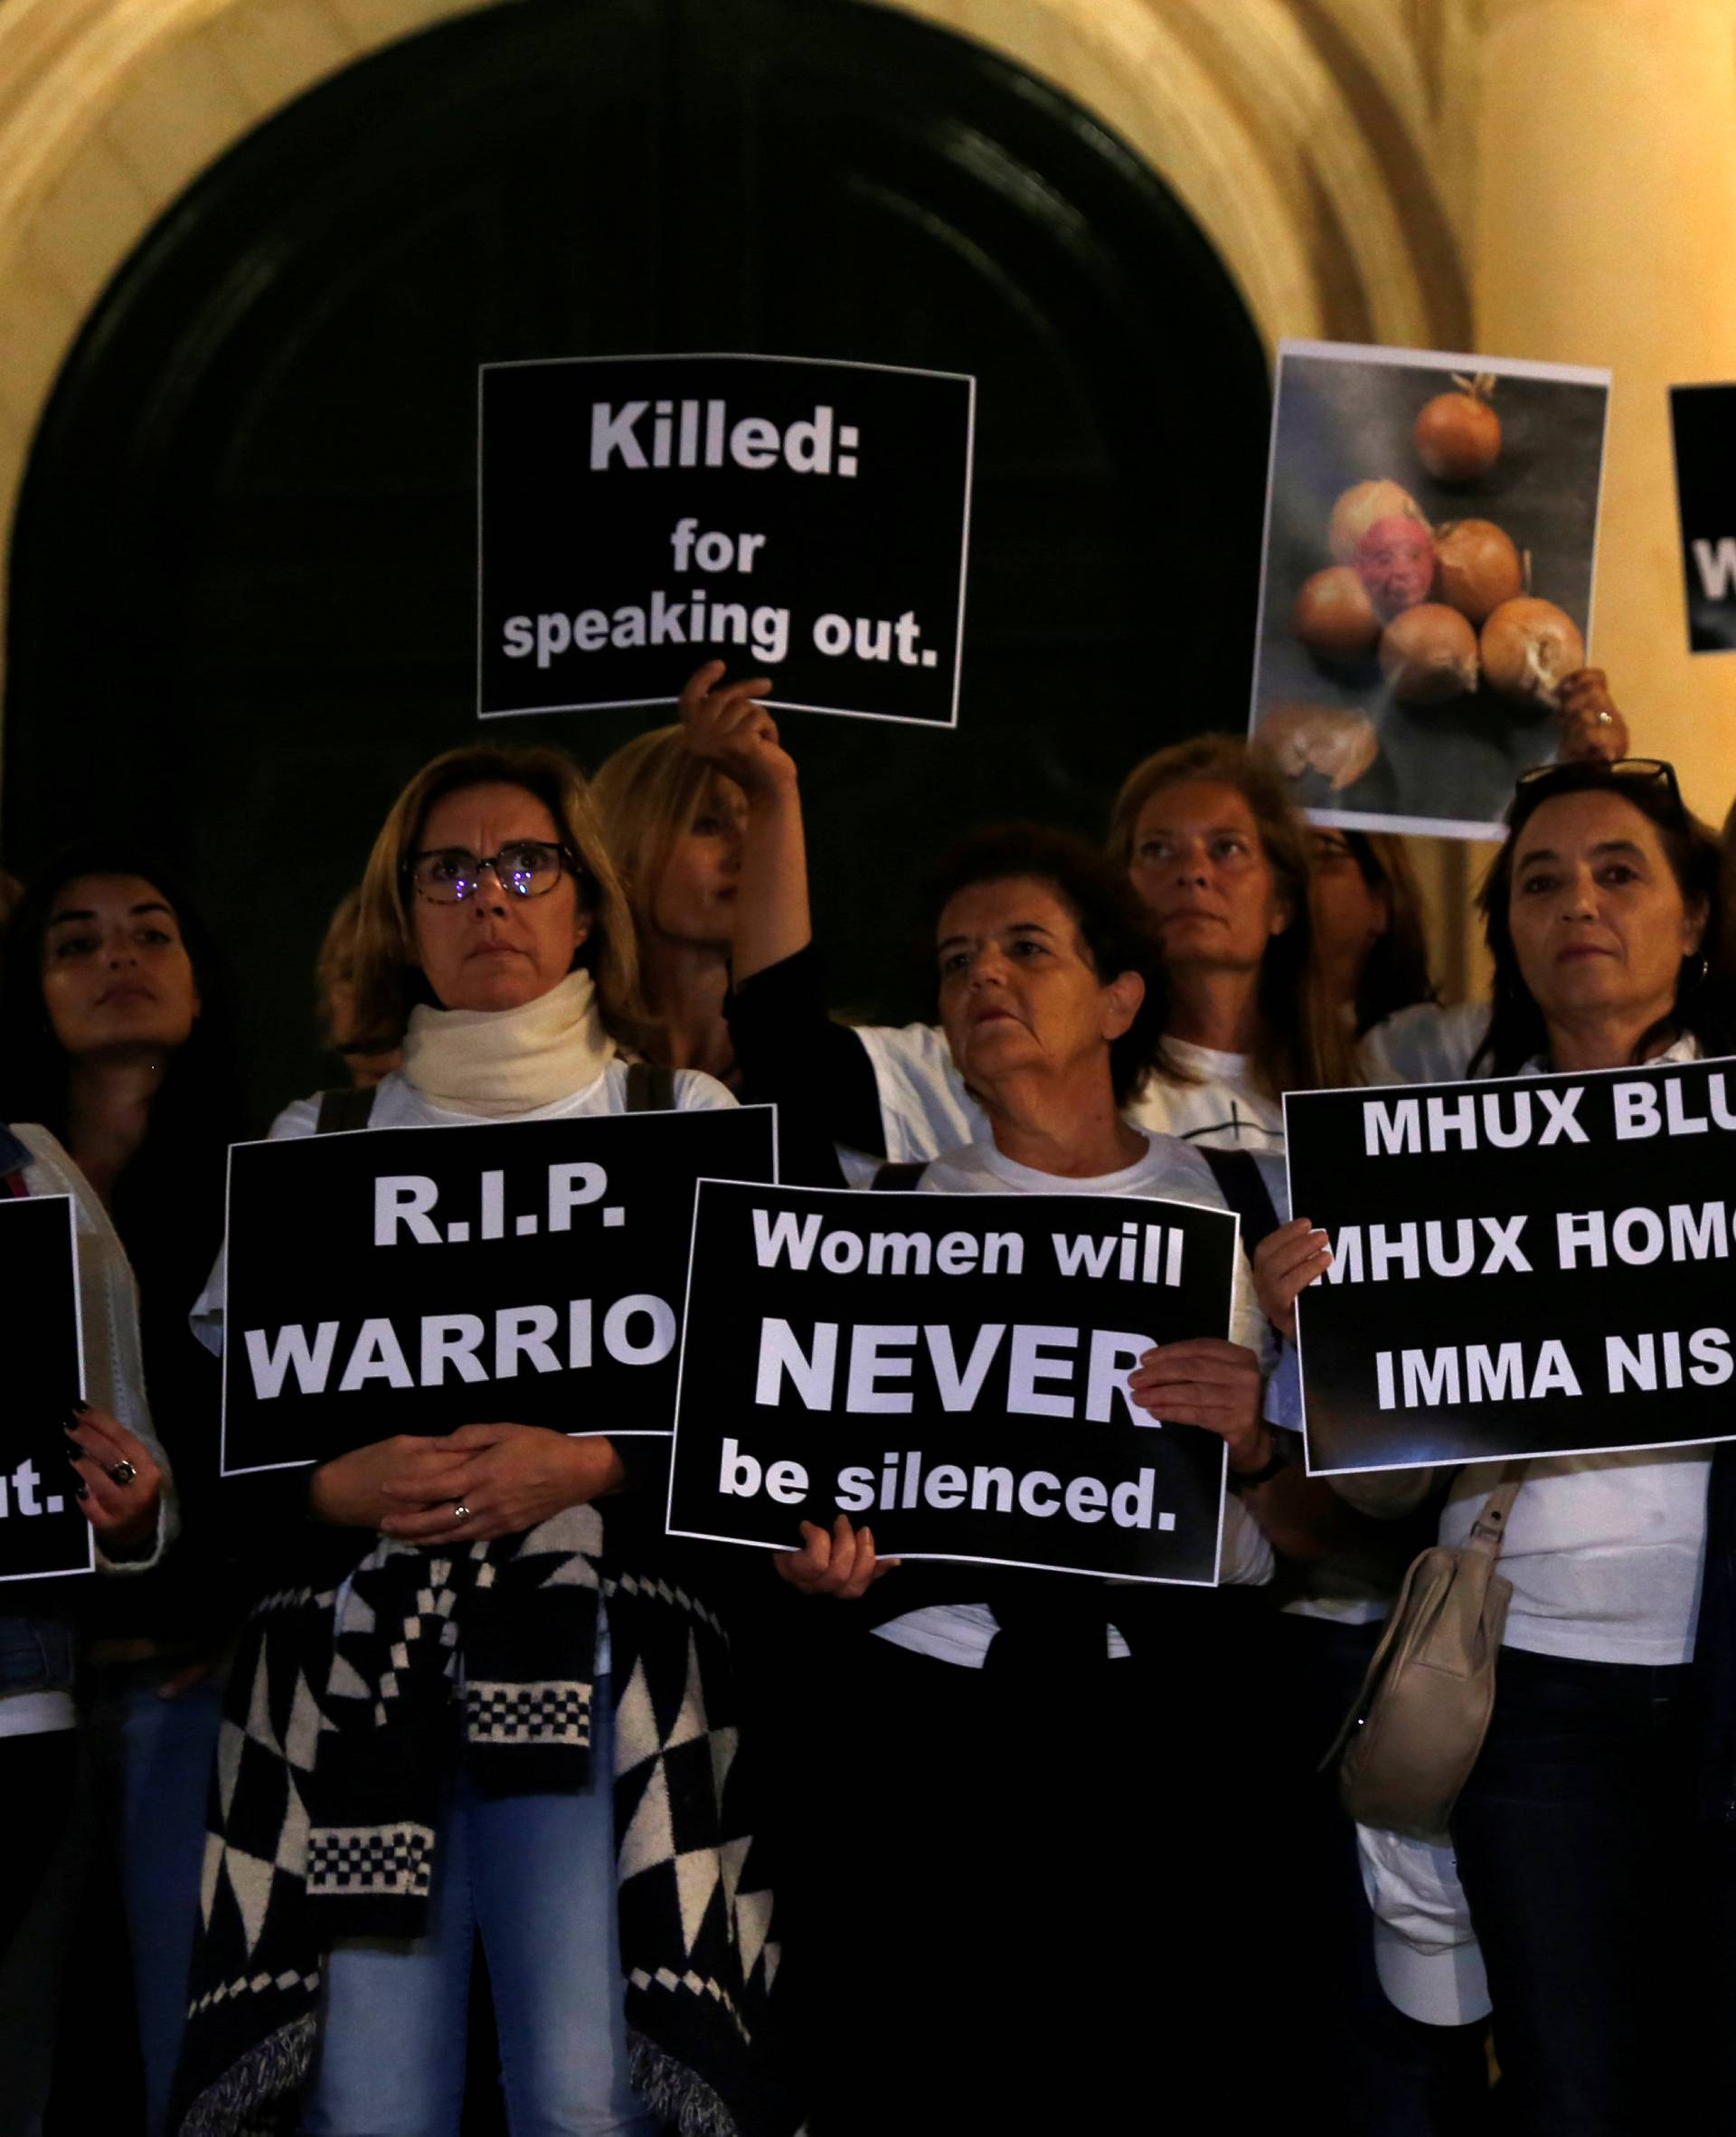 Protestors stand outside the Auberge de Castille, the office of Prime Minister Muscat, at the start of a four-day protest against the assassination of investigative journalist Daphne Caruana Galizia, in Valletta